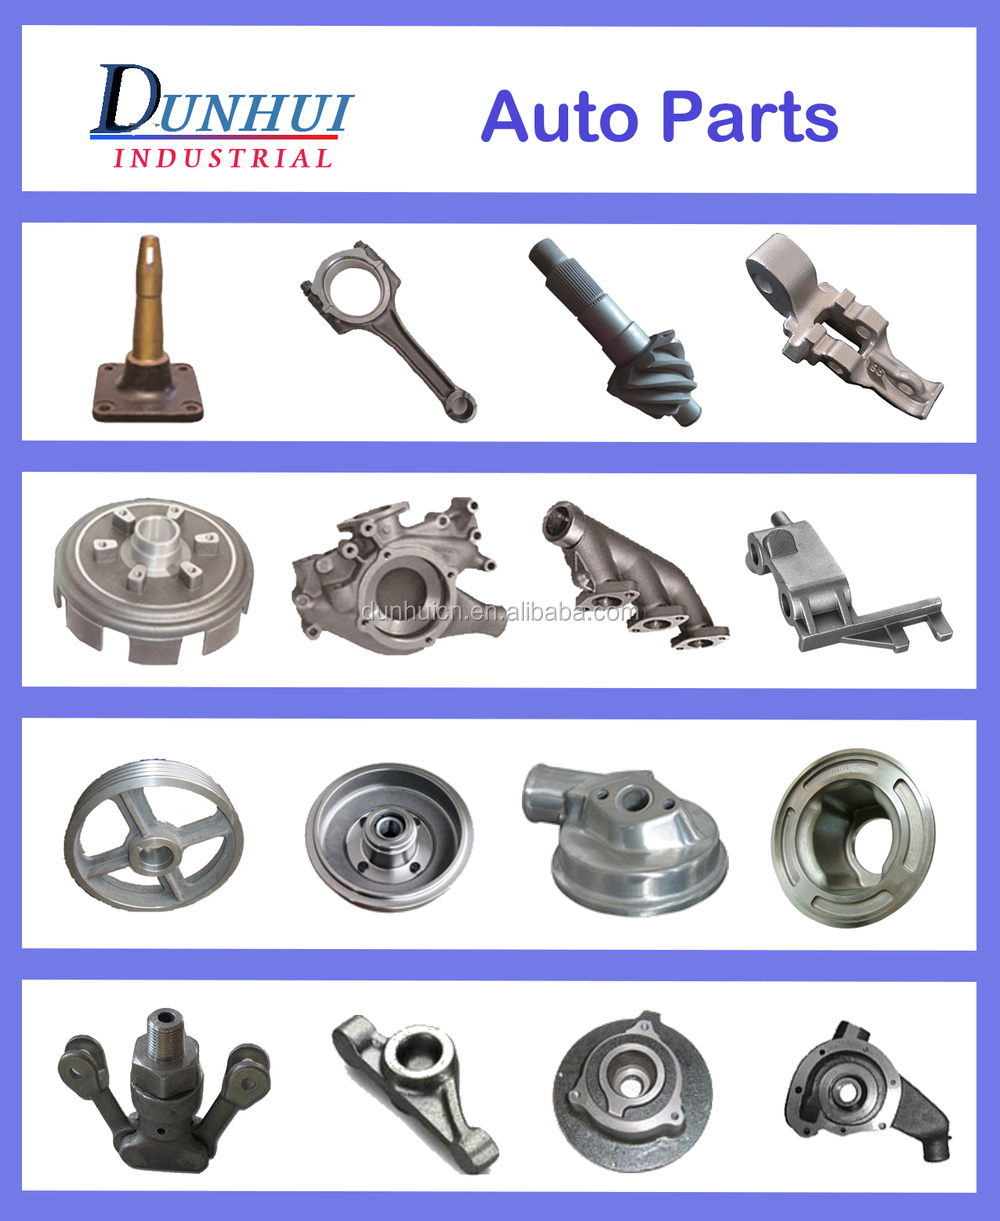 Automobile Parts Product : Oem auto spare parts cars buy